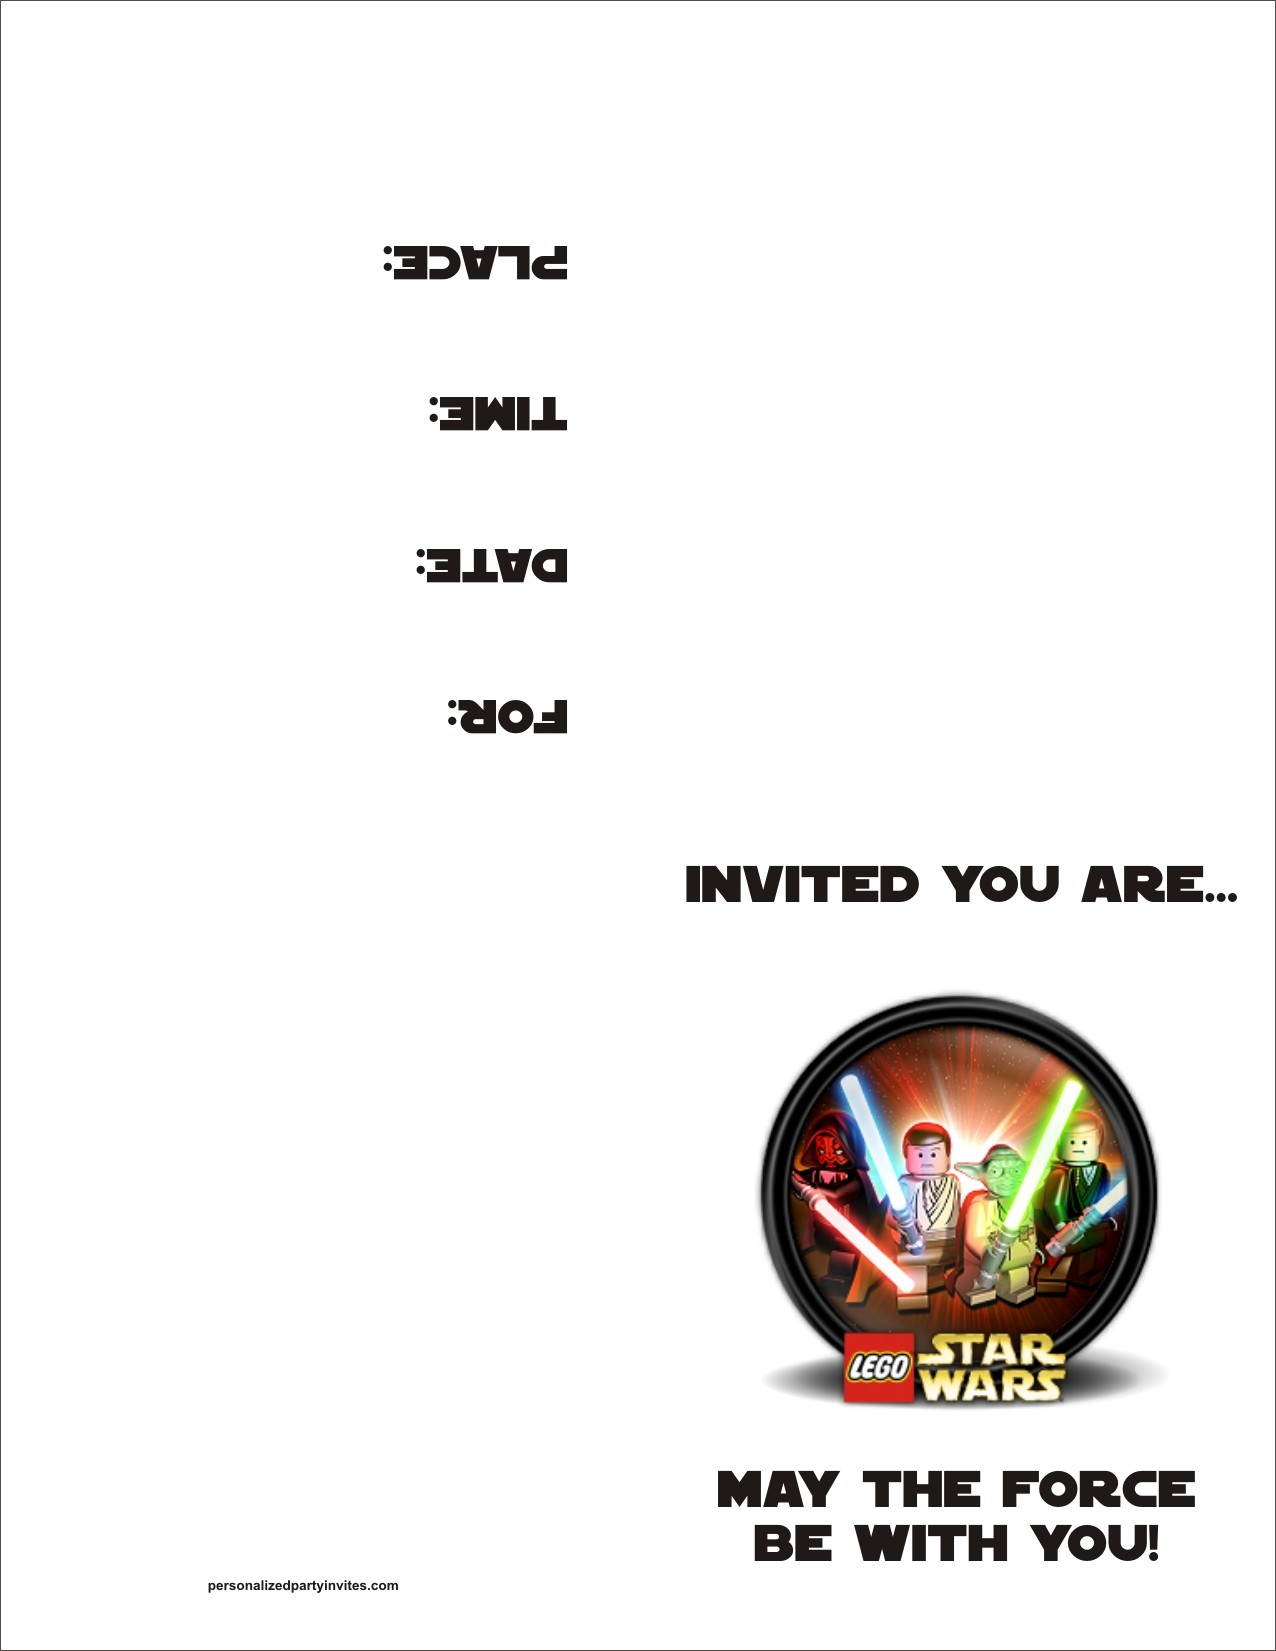 Personalized Party Invites News - Lego Star Wars free printable ...